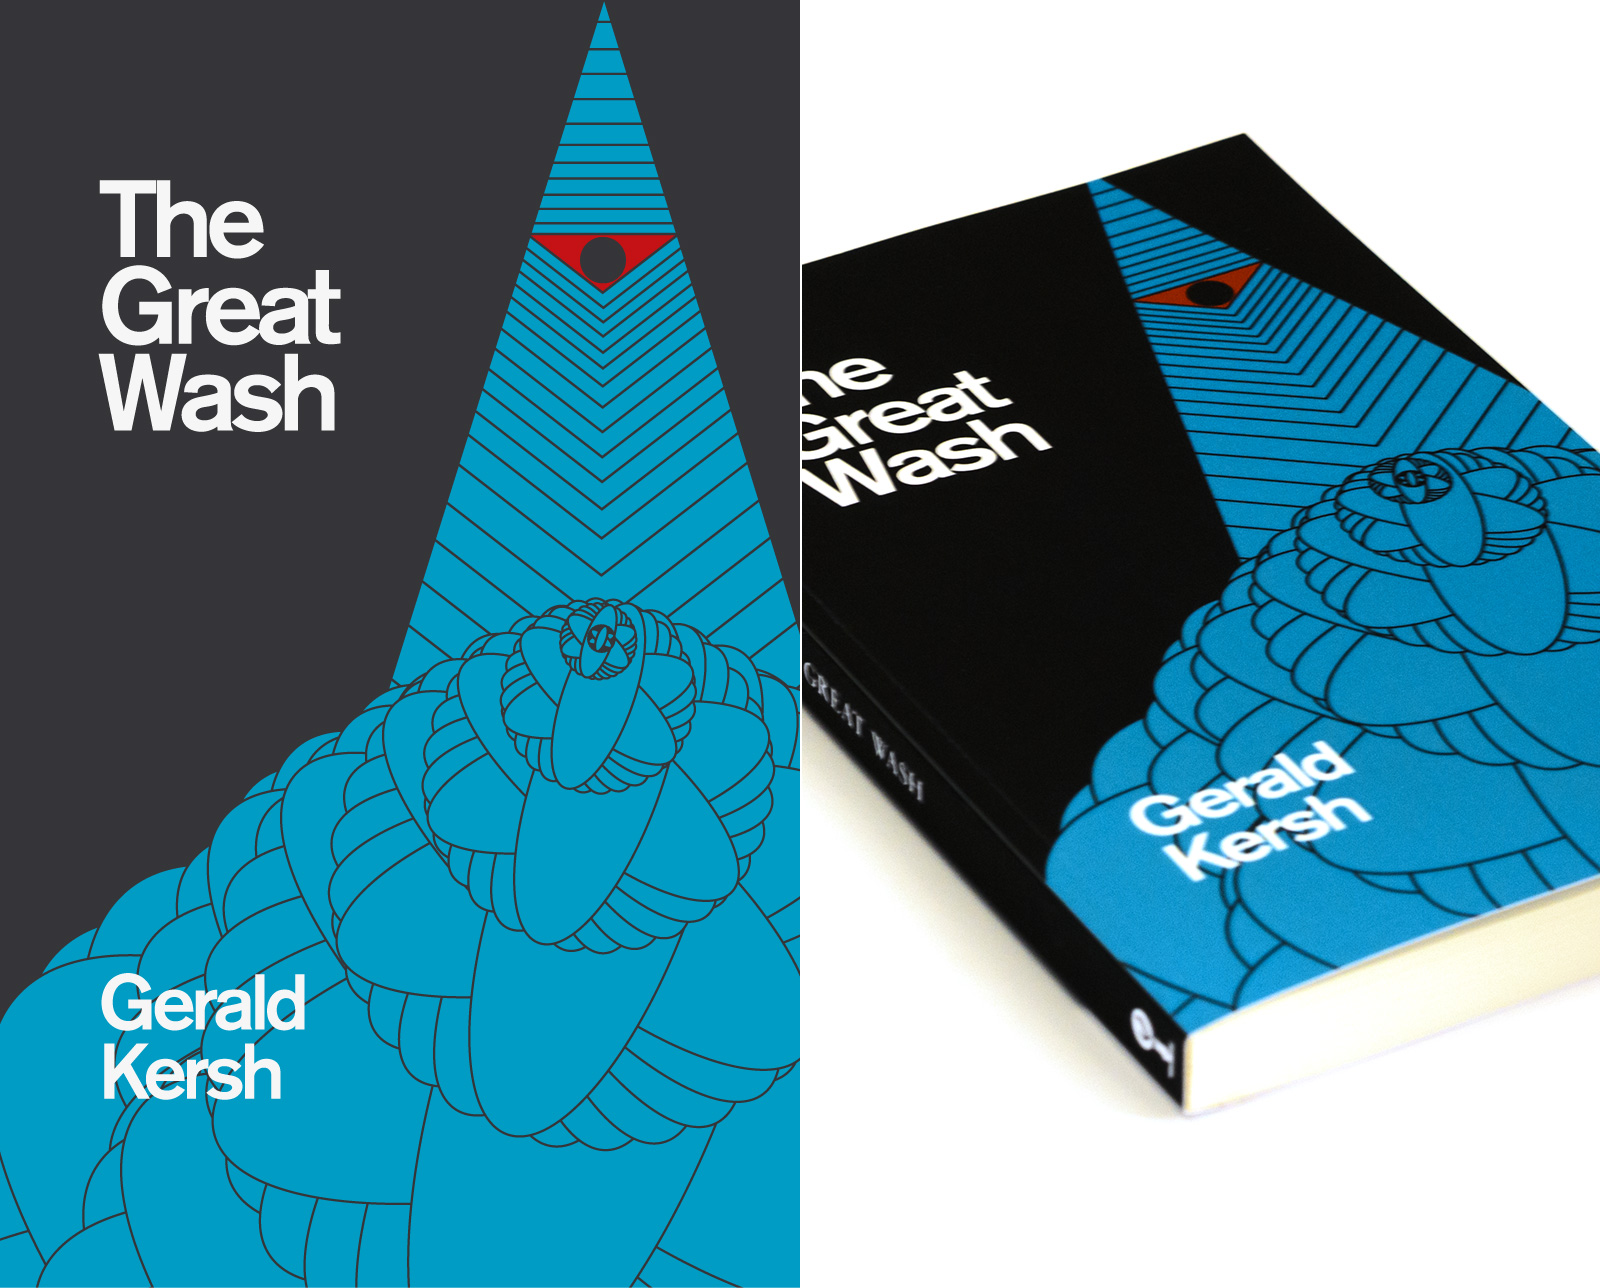 The Great Wash by Gerald Kersh